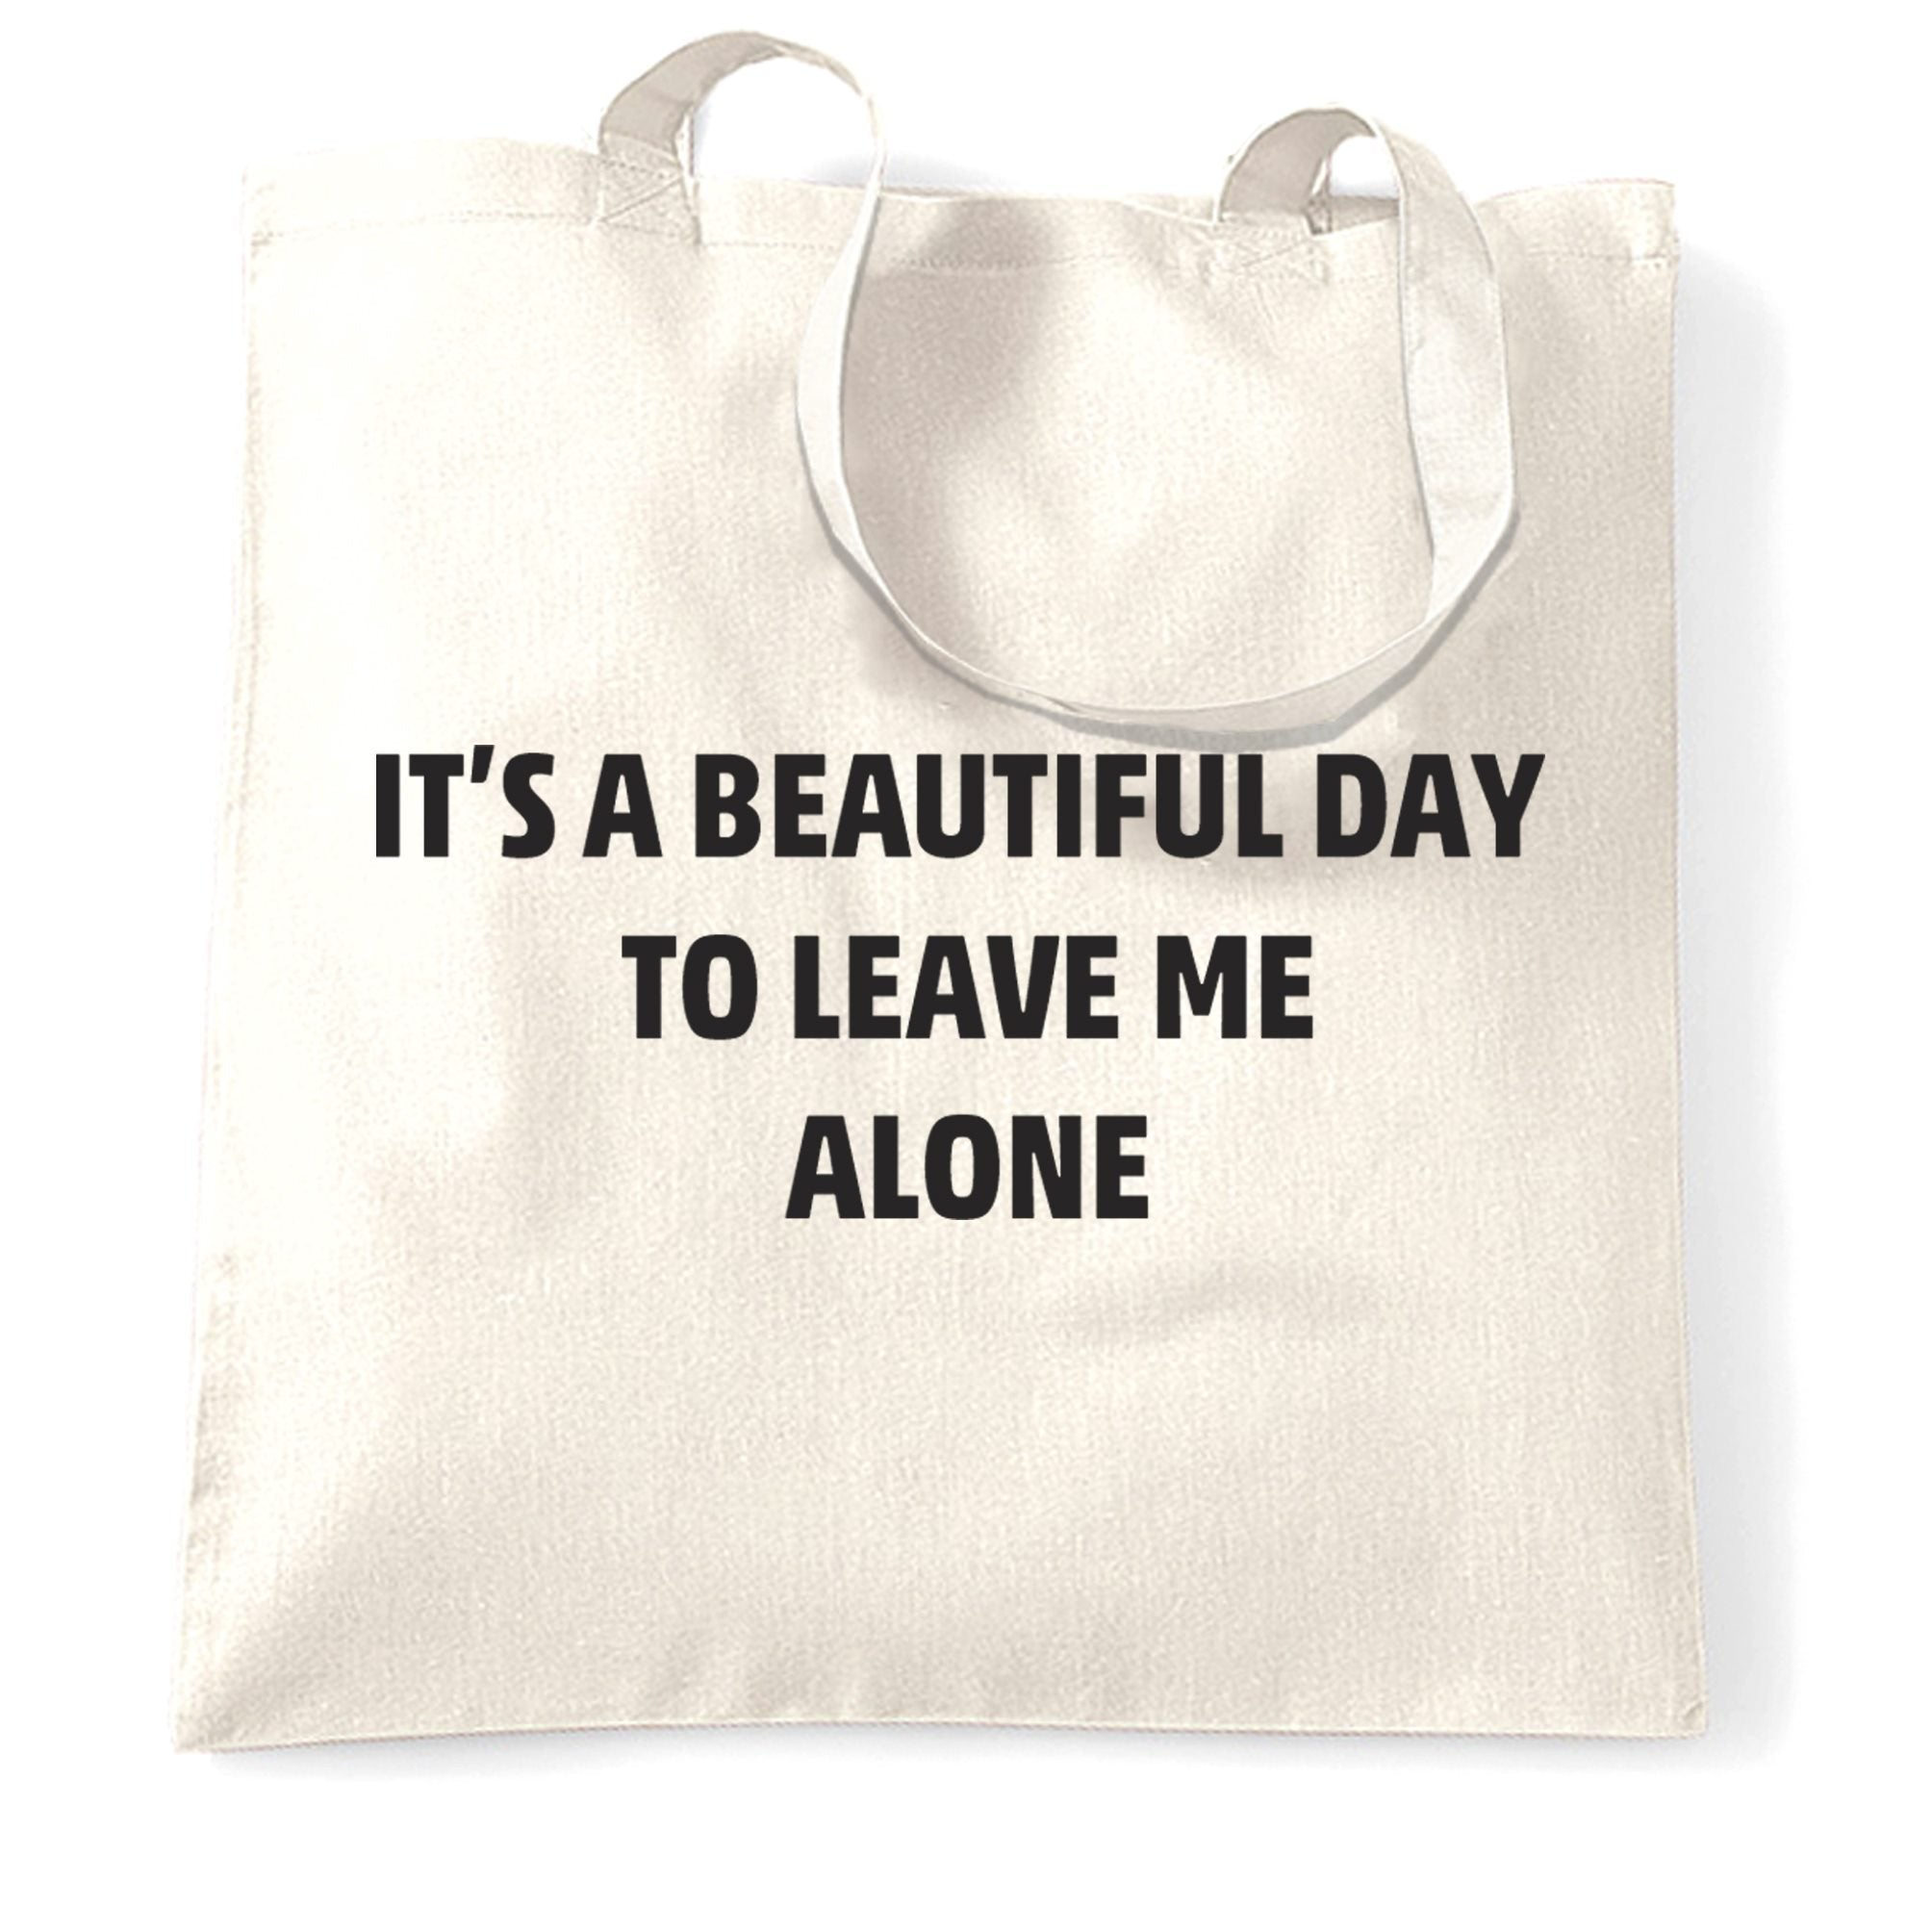 Joke Tote Bag It's A Beautiful Day To Leave Me Alone